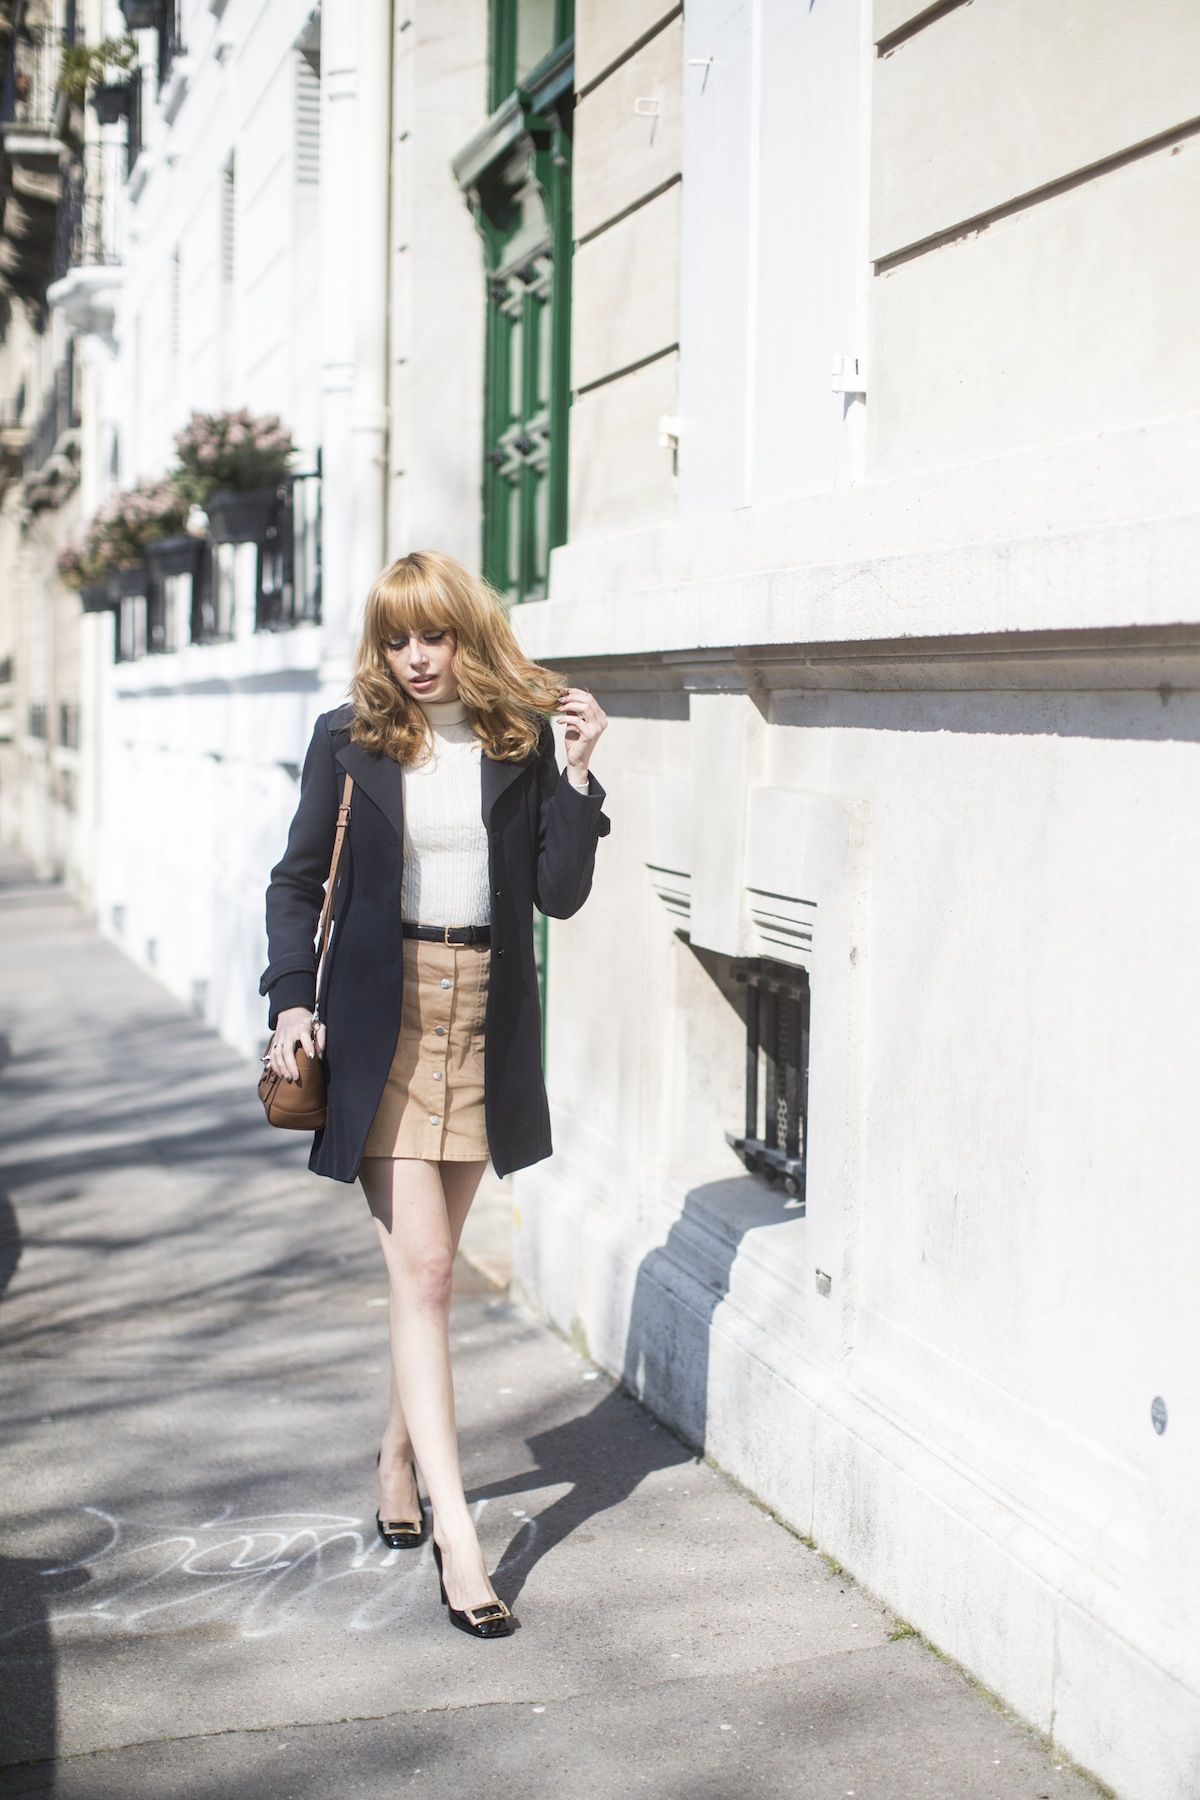 Louise Ebel in a cute tan button fronted skirt Skirt: Miss Patina, Coat: Pablo, Bag: Ralph Lauren, Shoes: Roger Vivier, Knit: Uniqlo